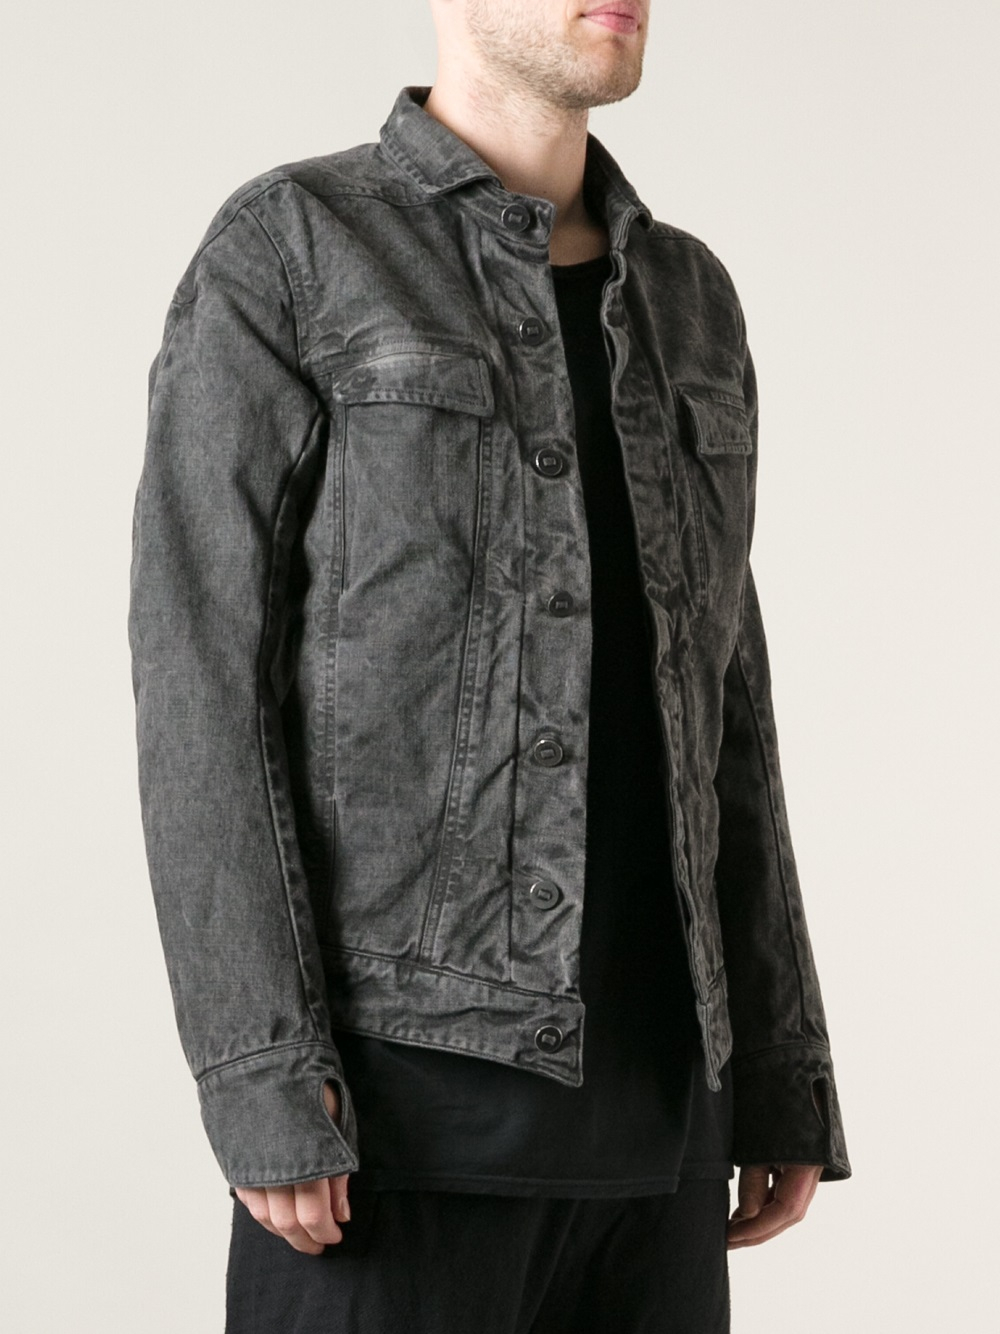 Boris bidjan saberi Denim Jacket in Gray for Men | Lyst